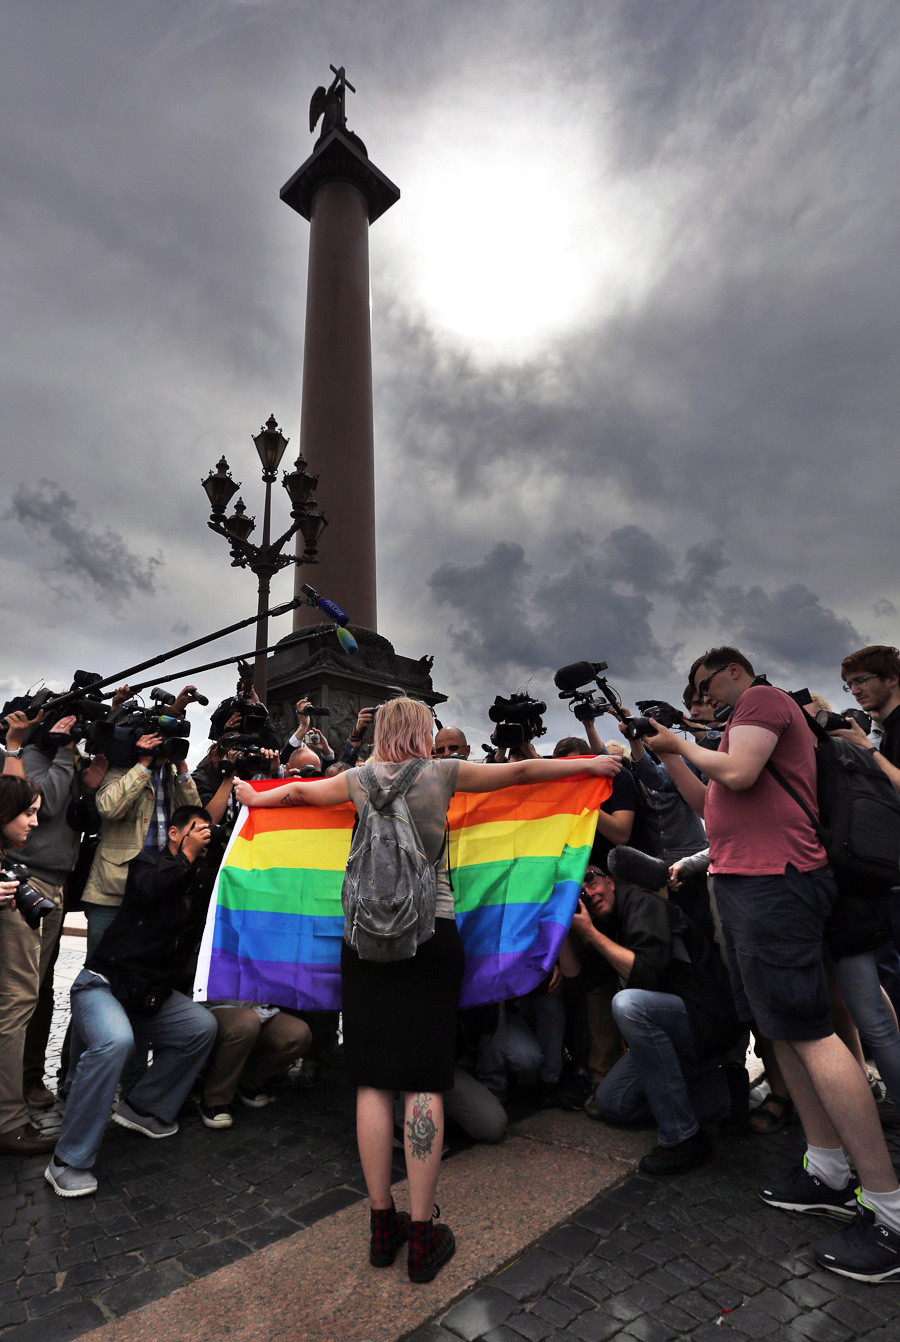 An LGBT activist stages a one-person protest against hatred and intolerance in St. Petersburg's Palace Square.